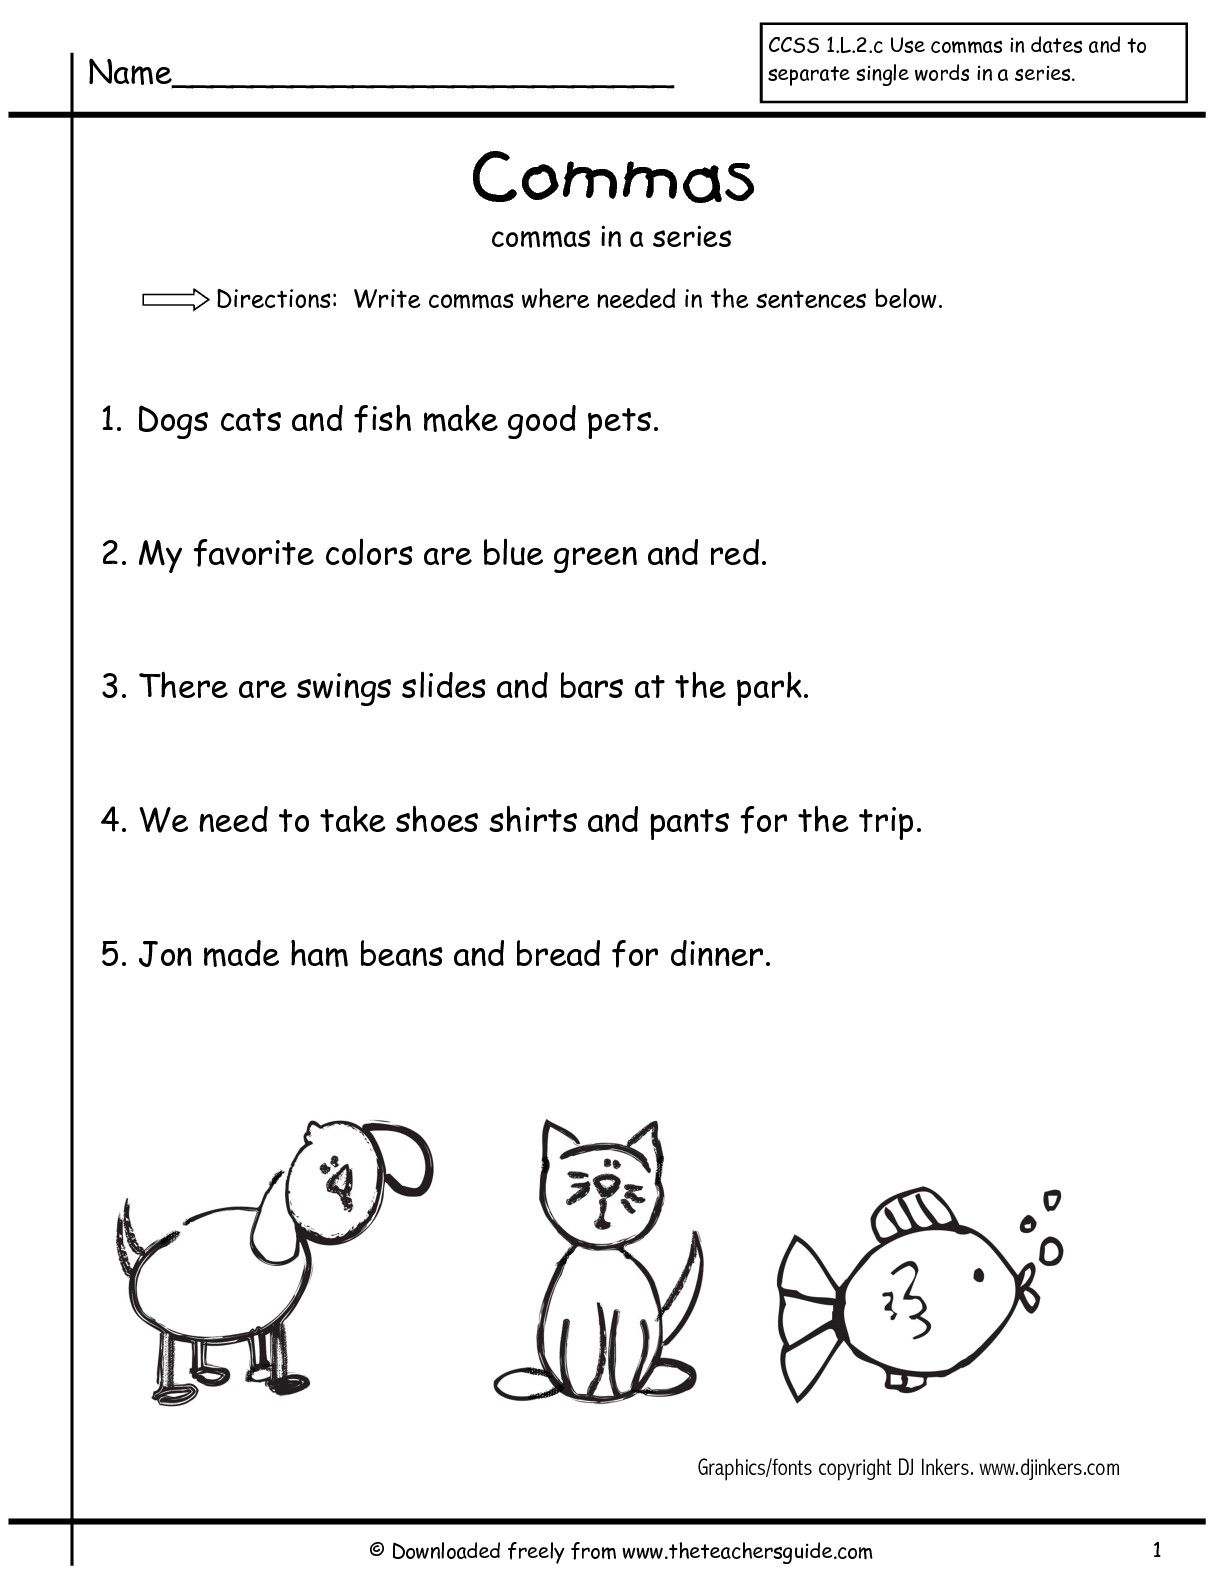 Worksheets Second Grade Grammar Worksheets grammar worksheets commas in a series first grade free comma worksheets